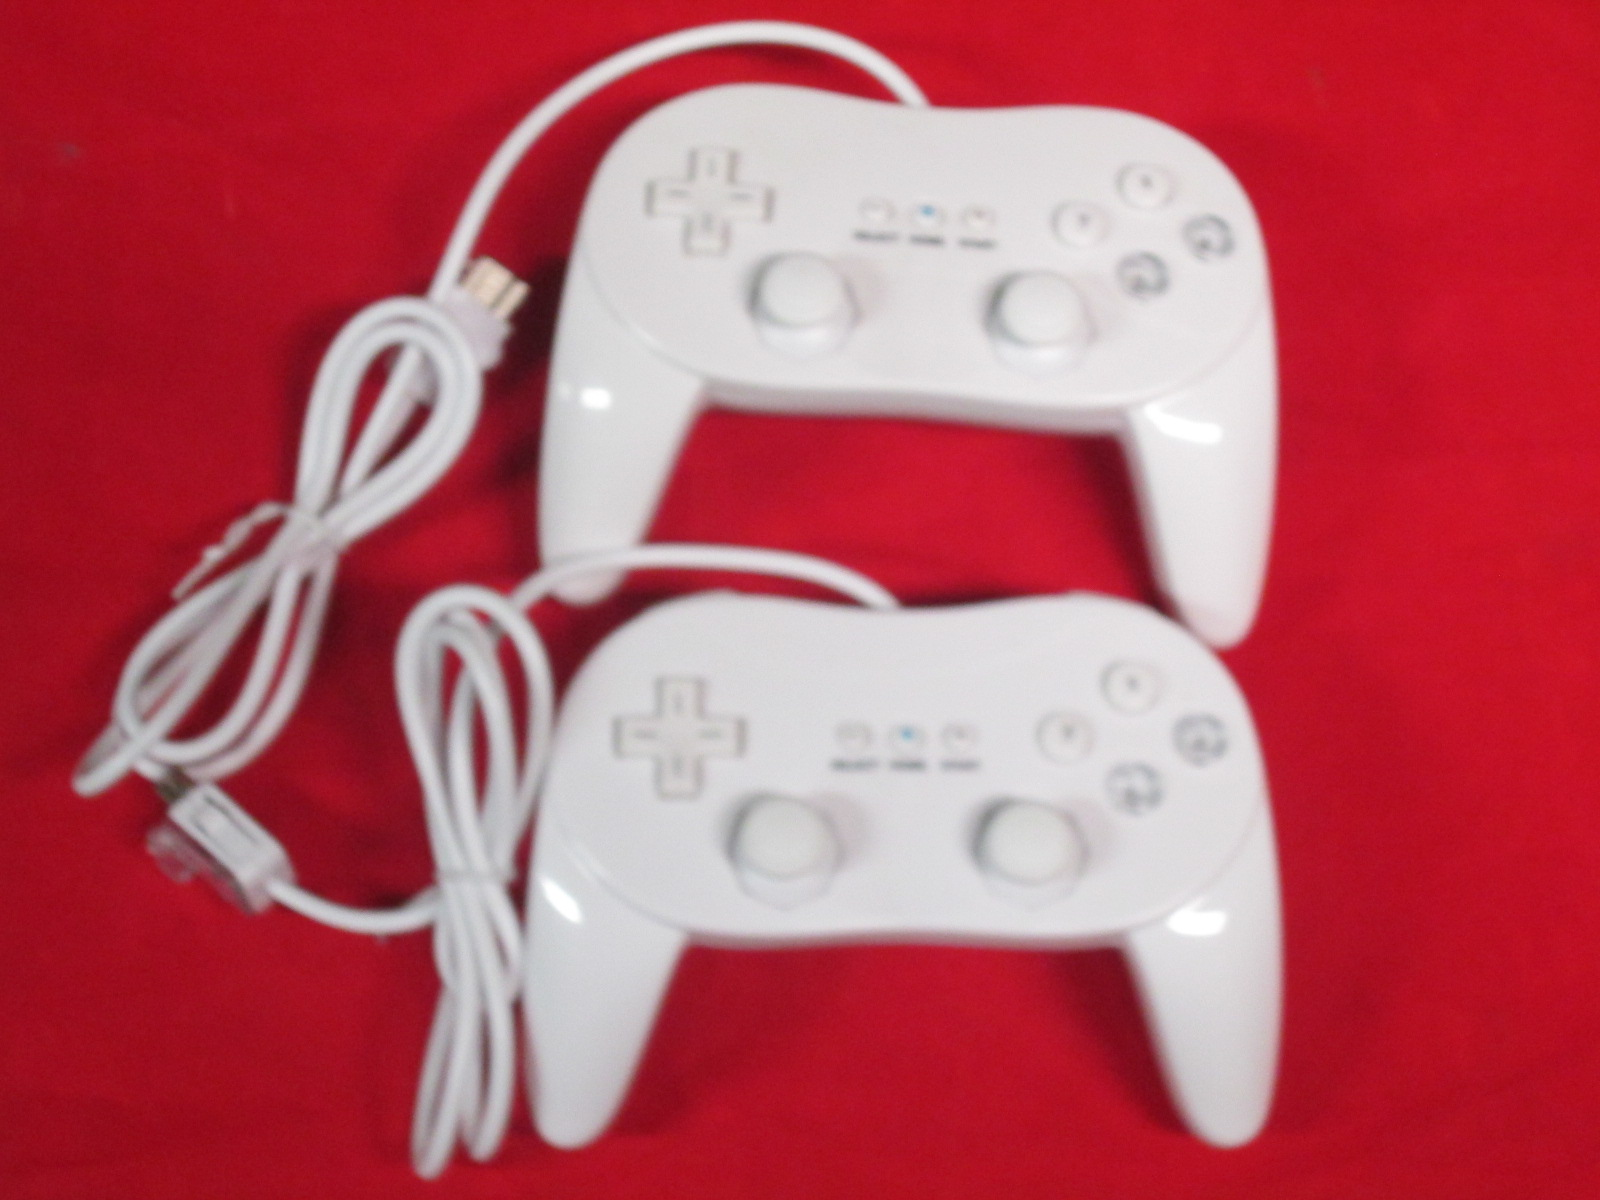 2 Classic Controller Pro For Nintendo Wii Remote White